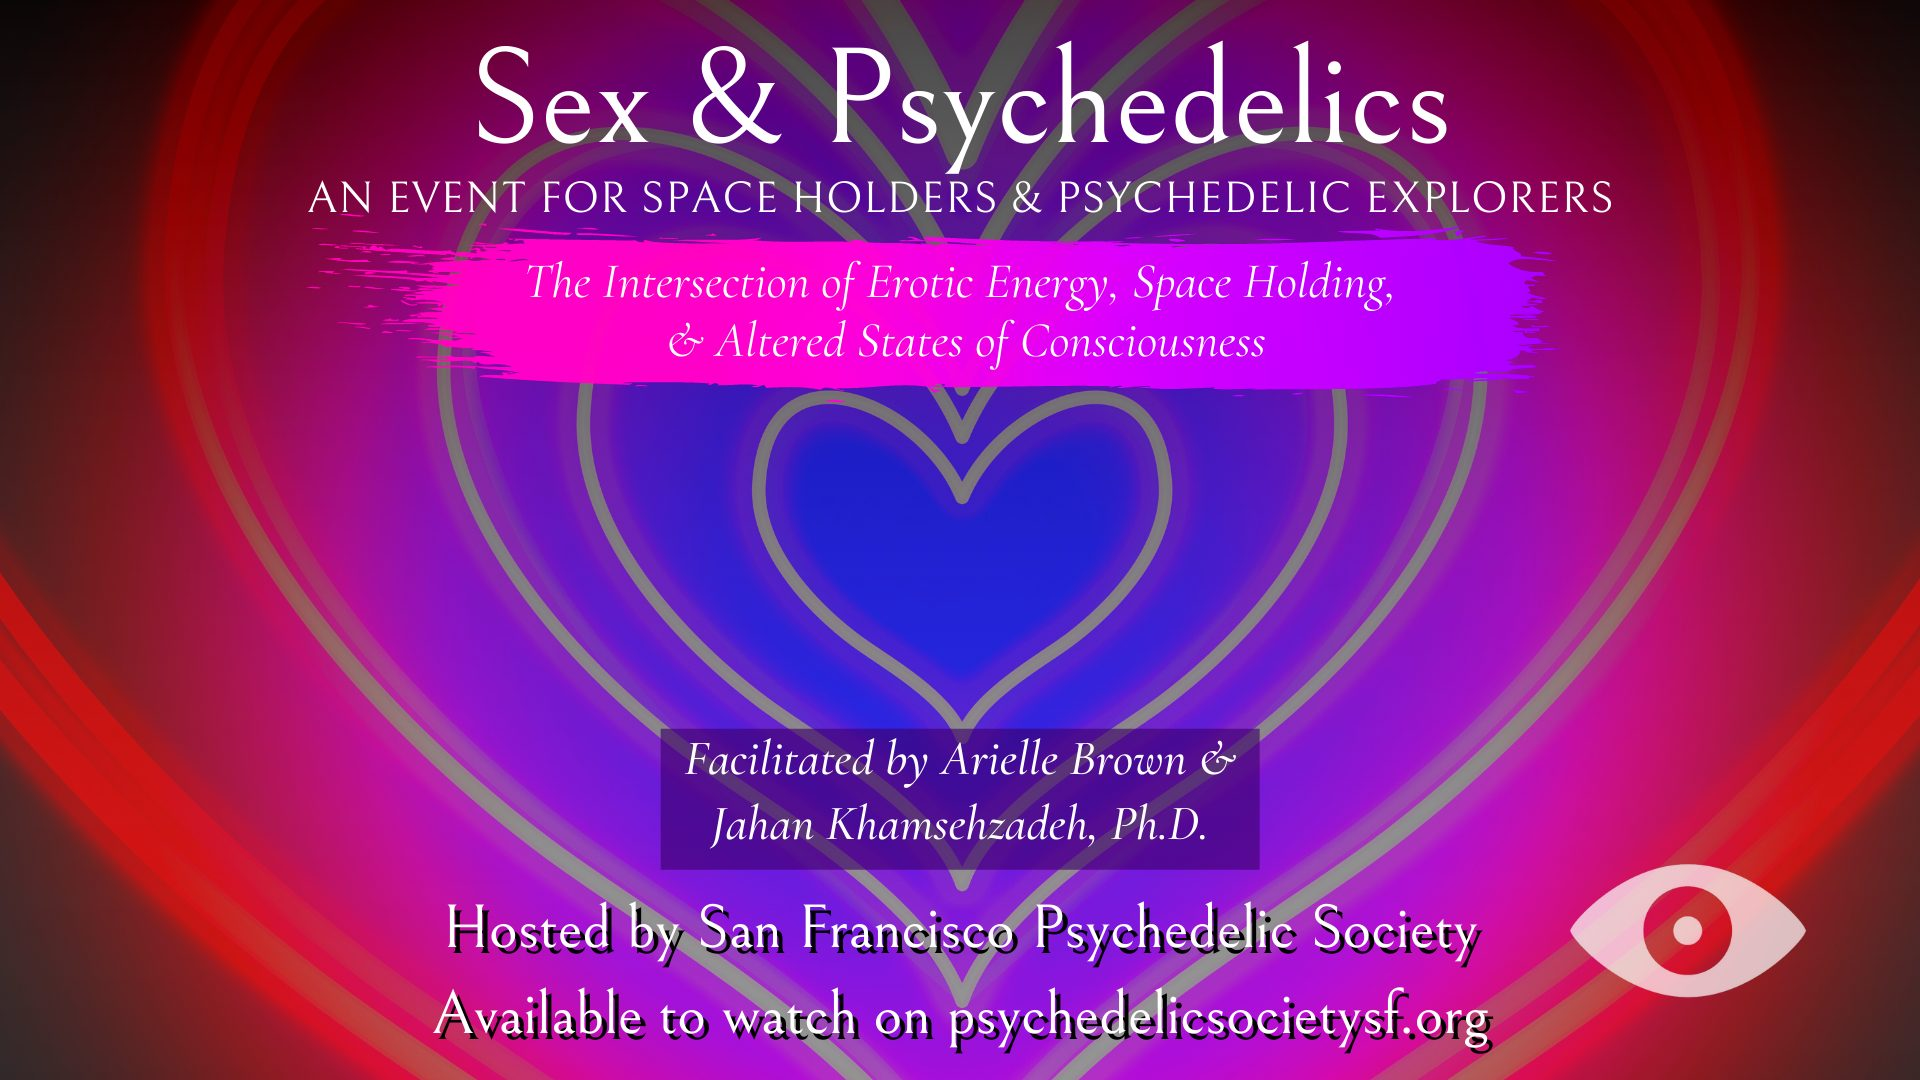 Sex and Psychedelics The Intersection of Erotic Energy, Space Holding, & Altered States of Consciousness